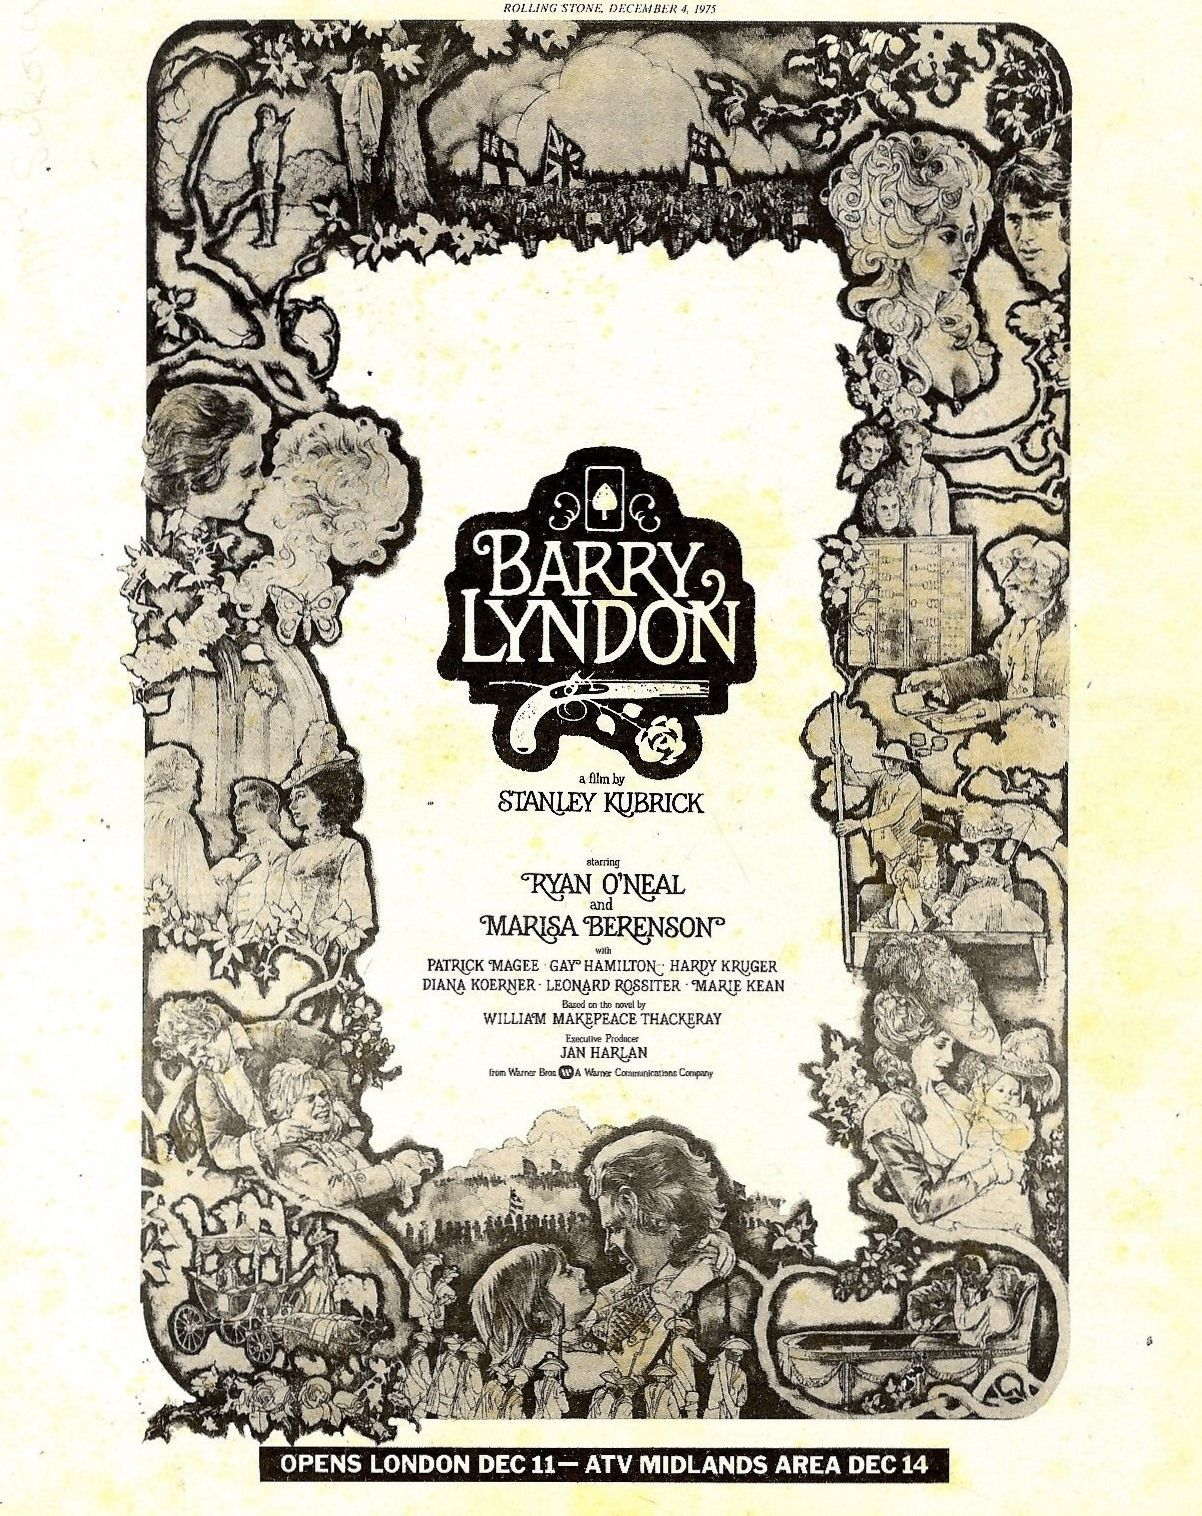 Barry Lyndon poster ATV area